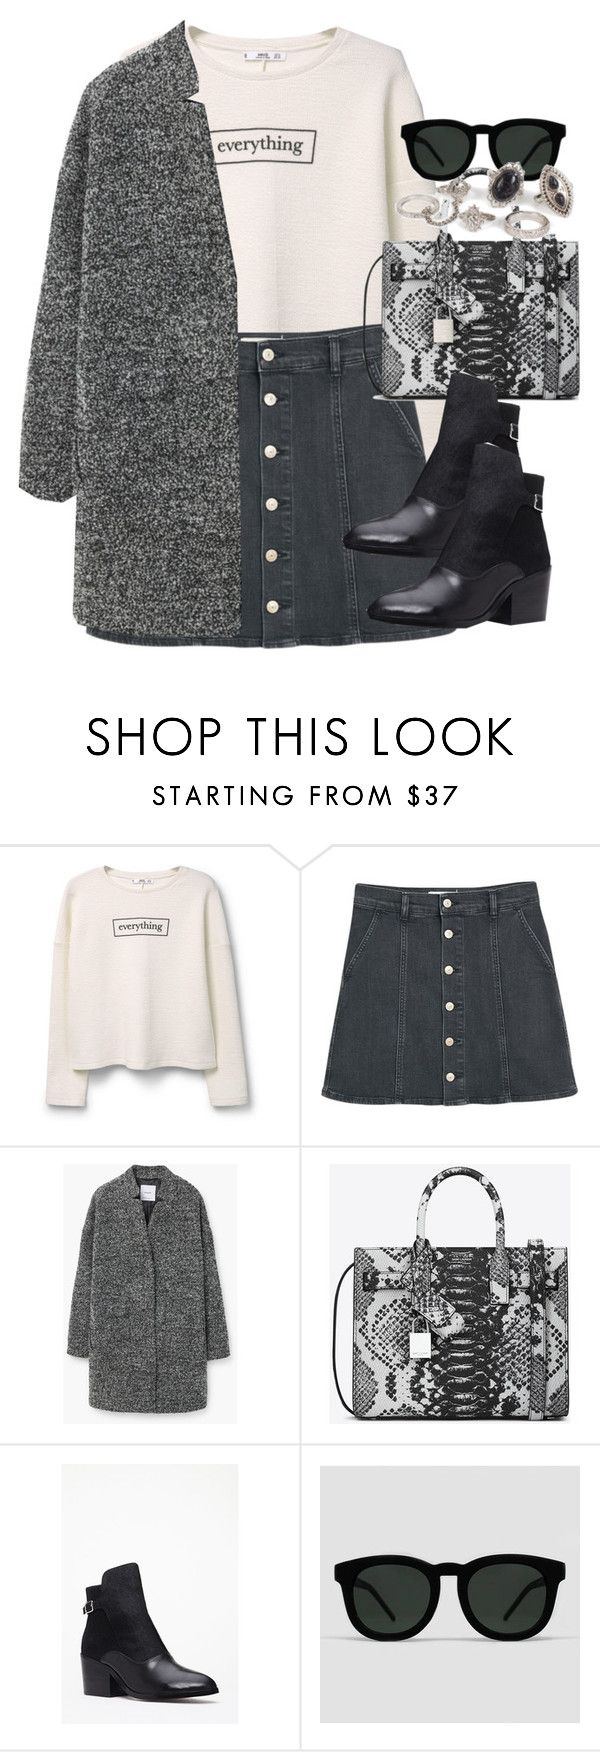 """""""Untitled #3428"""" by peachv ❤ liked on Polyvore featuring MANGO, Yves Saint Laurent, Forever 21, Quay and New Look"""